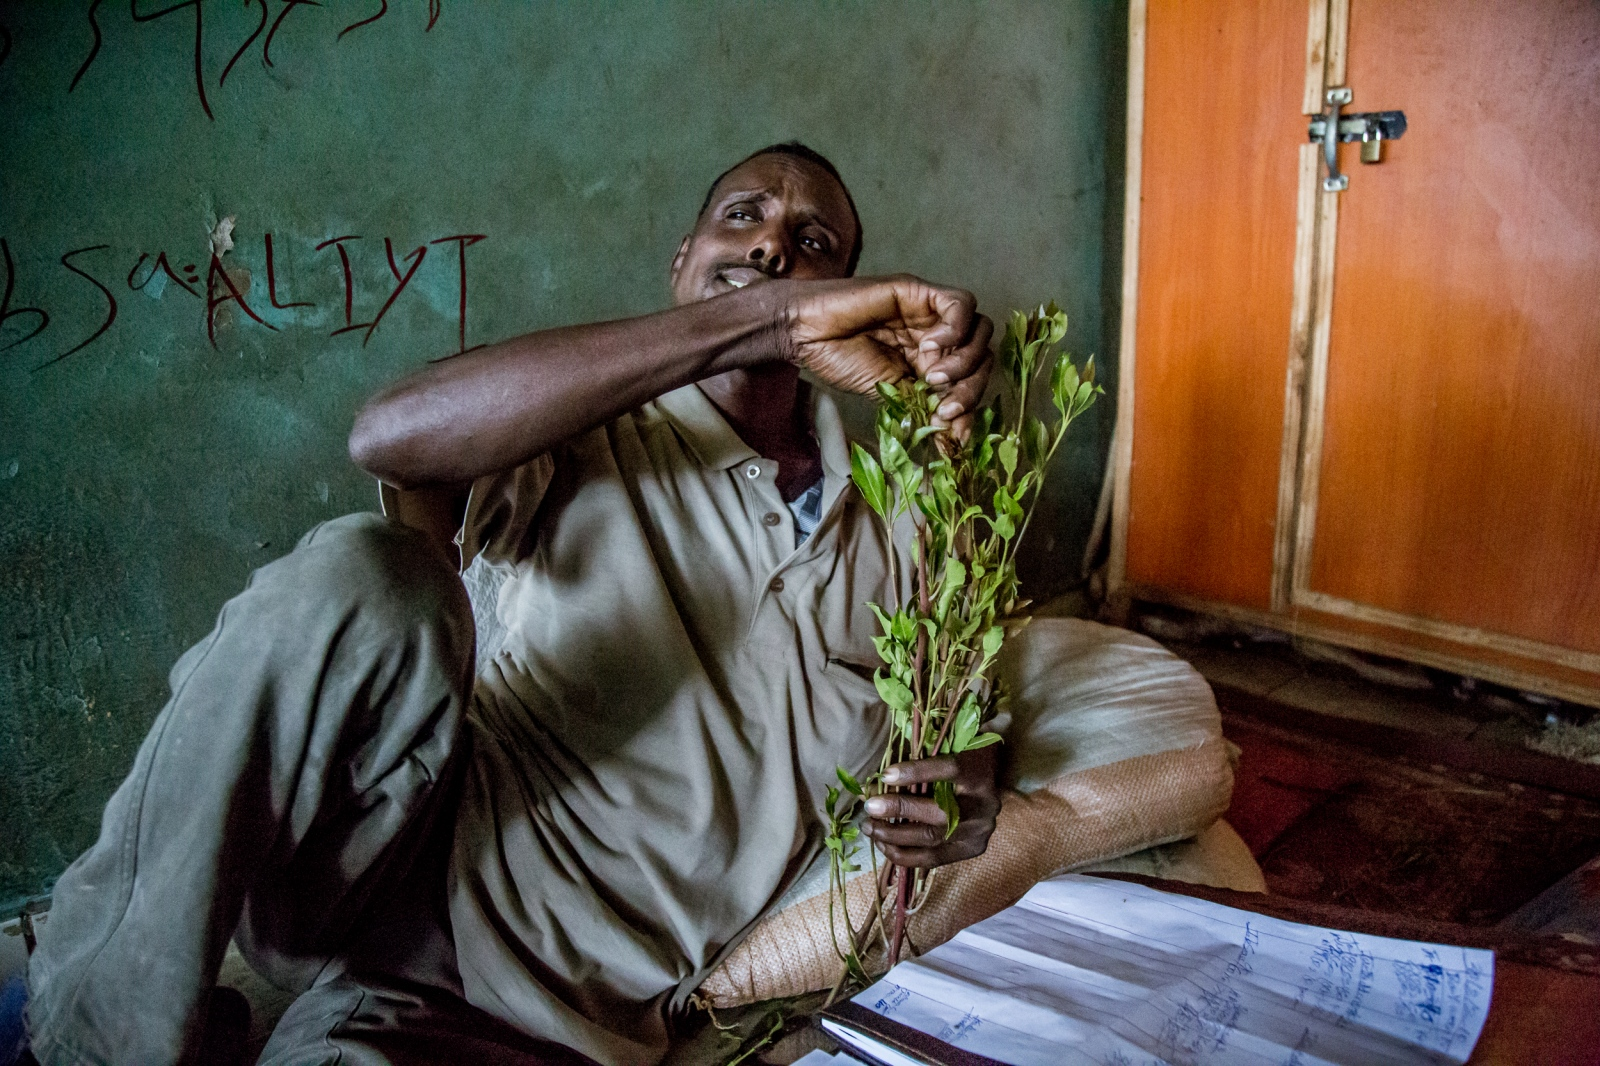 Merchant in his warehouse is chewing khat. Khat contains two alkaloids, cathinone and cathine, which act as stimulants. Users simply chew the green khat leaves, keeping a ball of partially chewed leaves against the inside of their cheek.